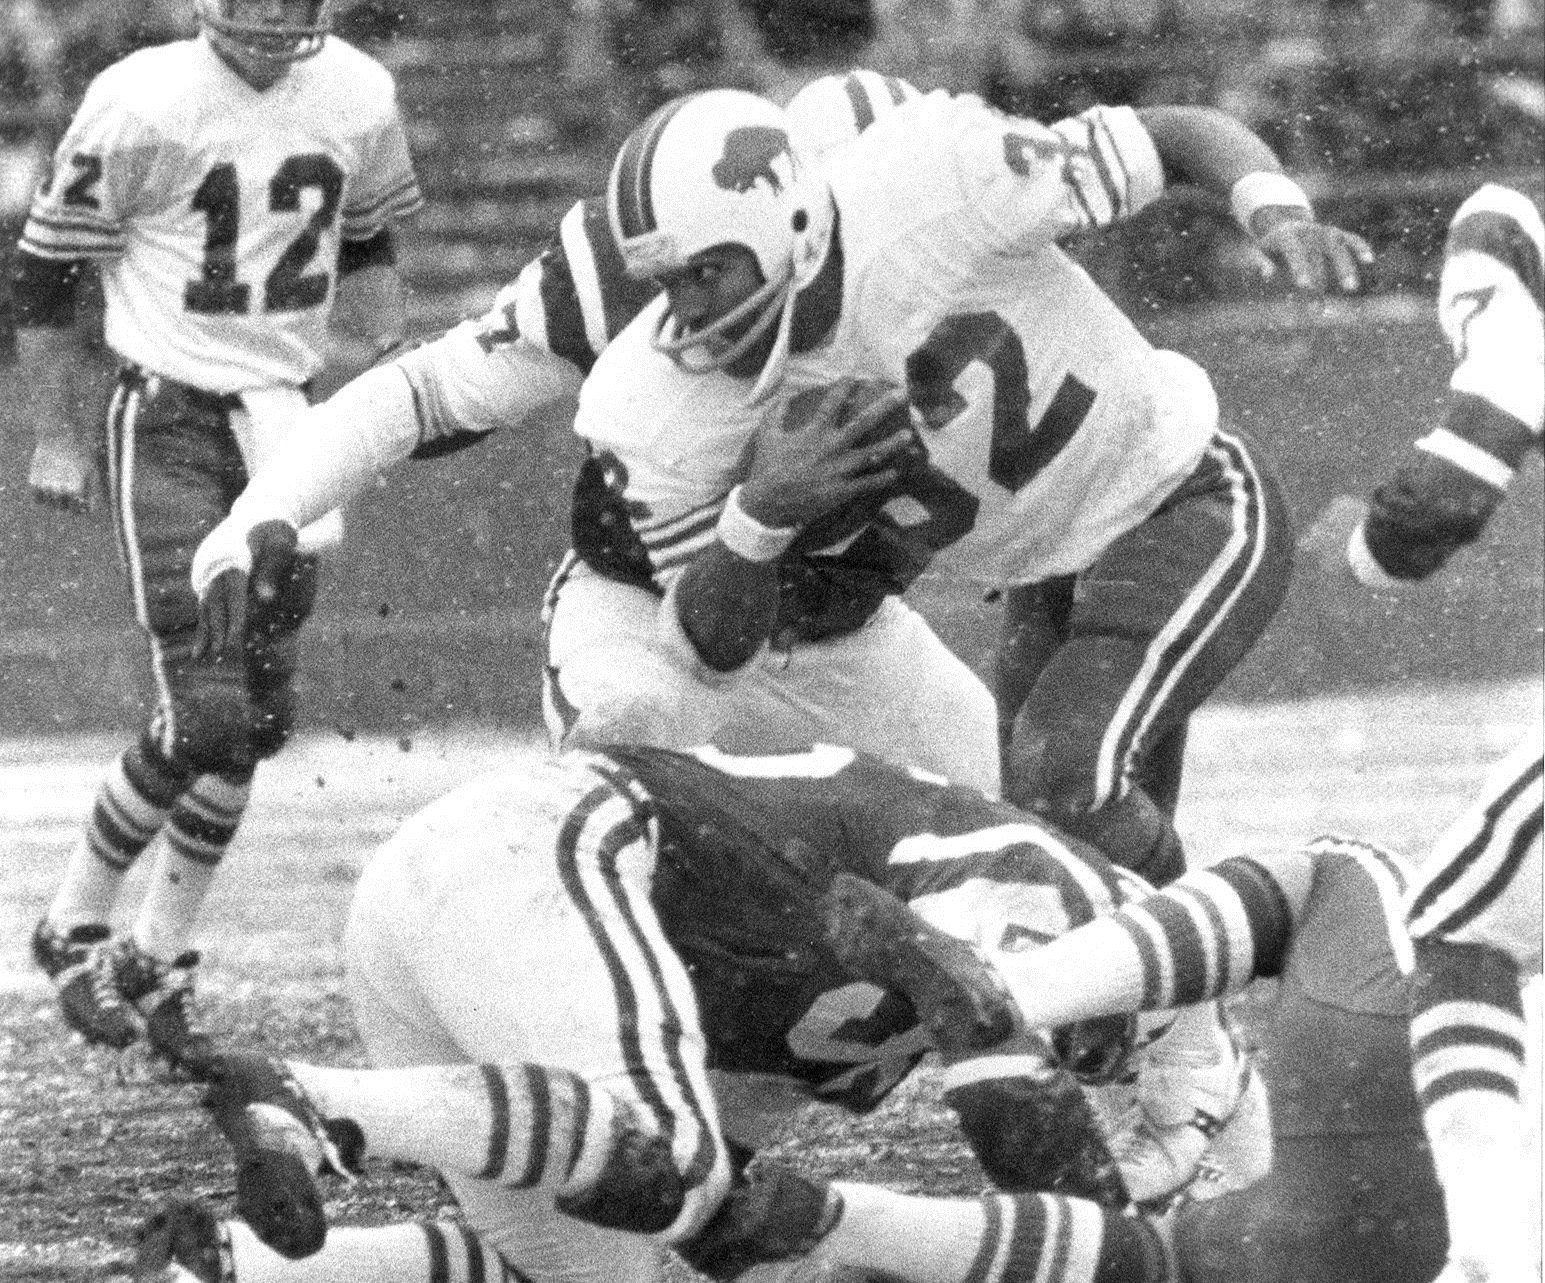 O.J. Simpson's record-setting rushing day on Thanksgiving in 1976 wasn't enough to beat the Detroit Lions. (Buffalo News file photo)